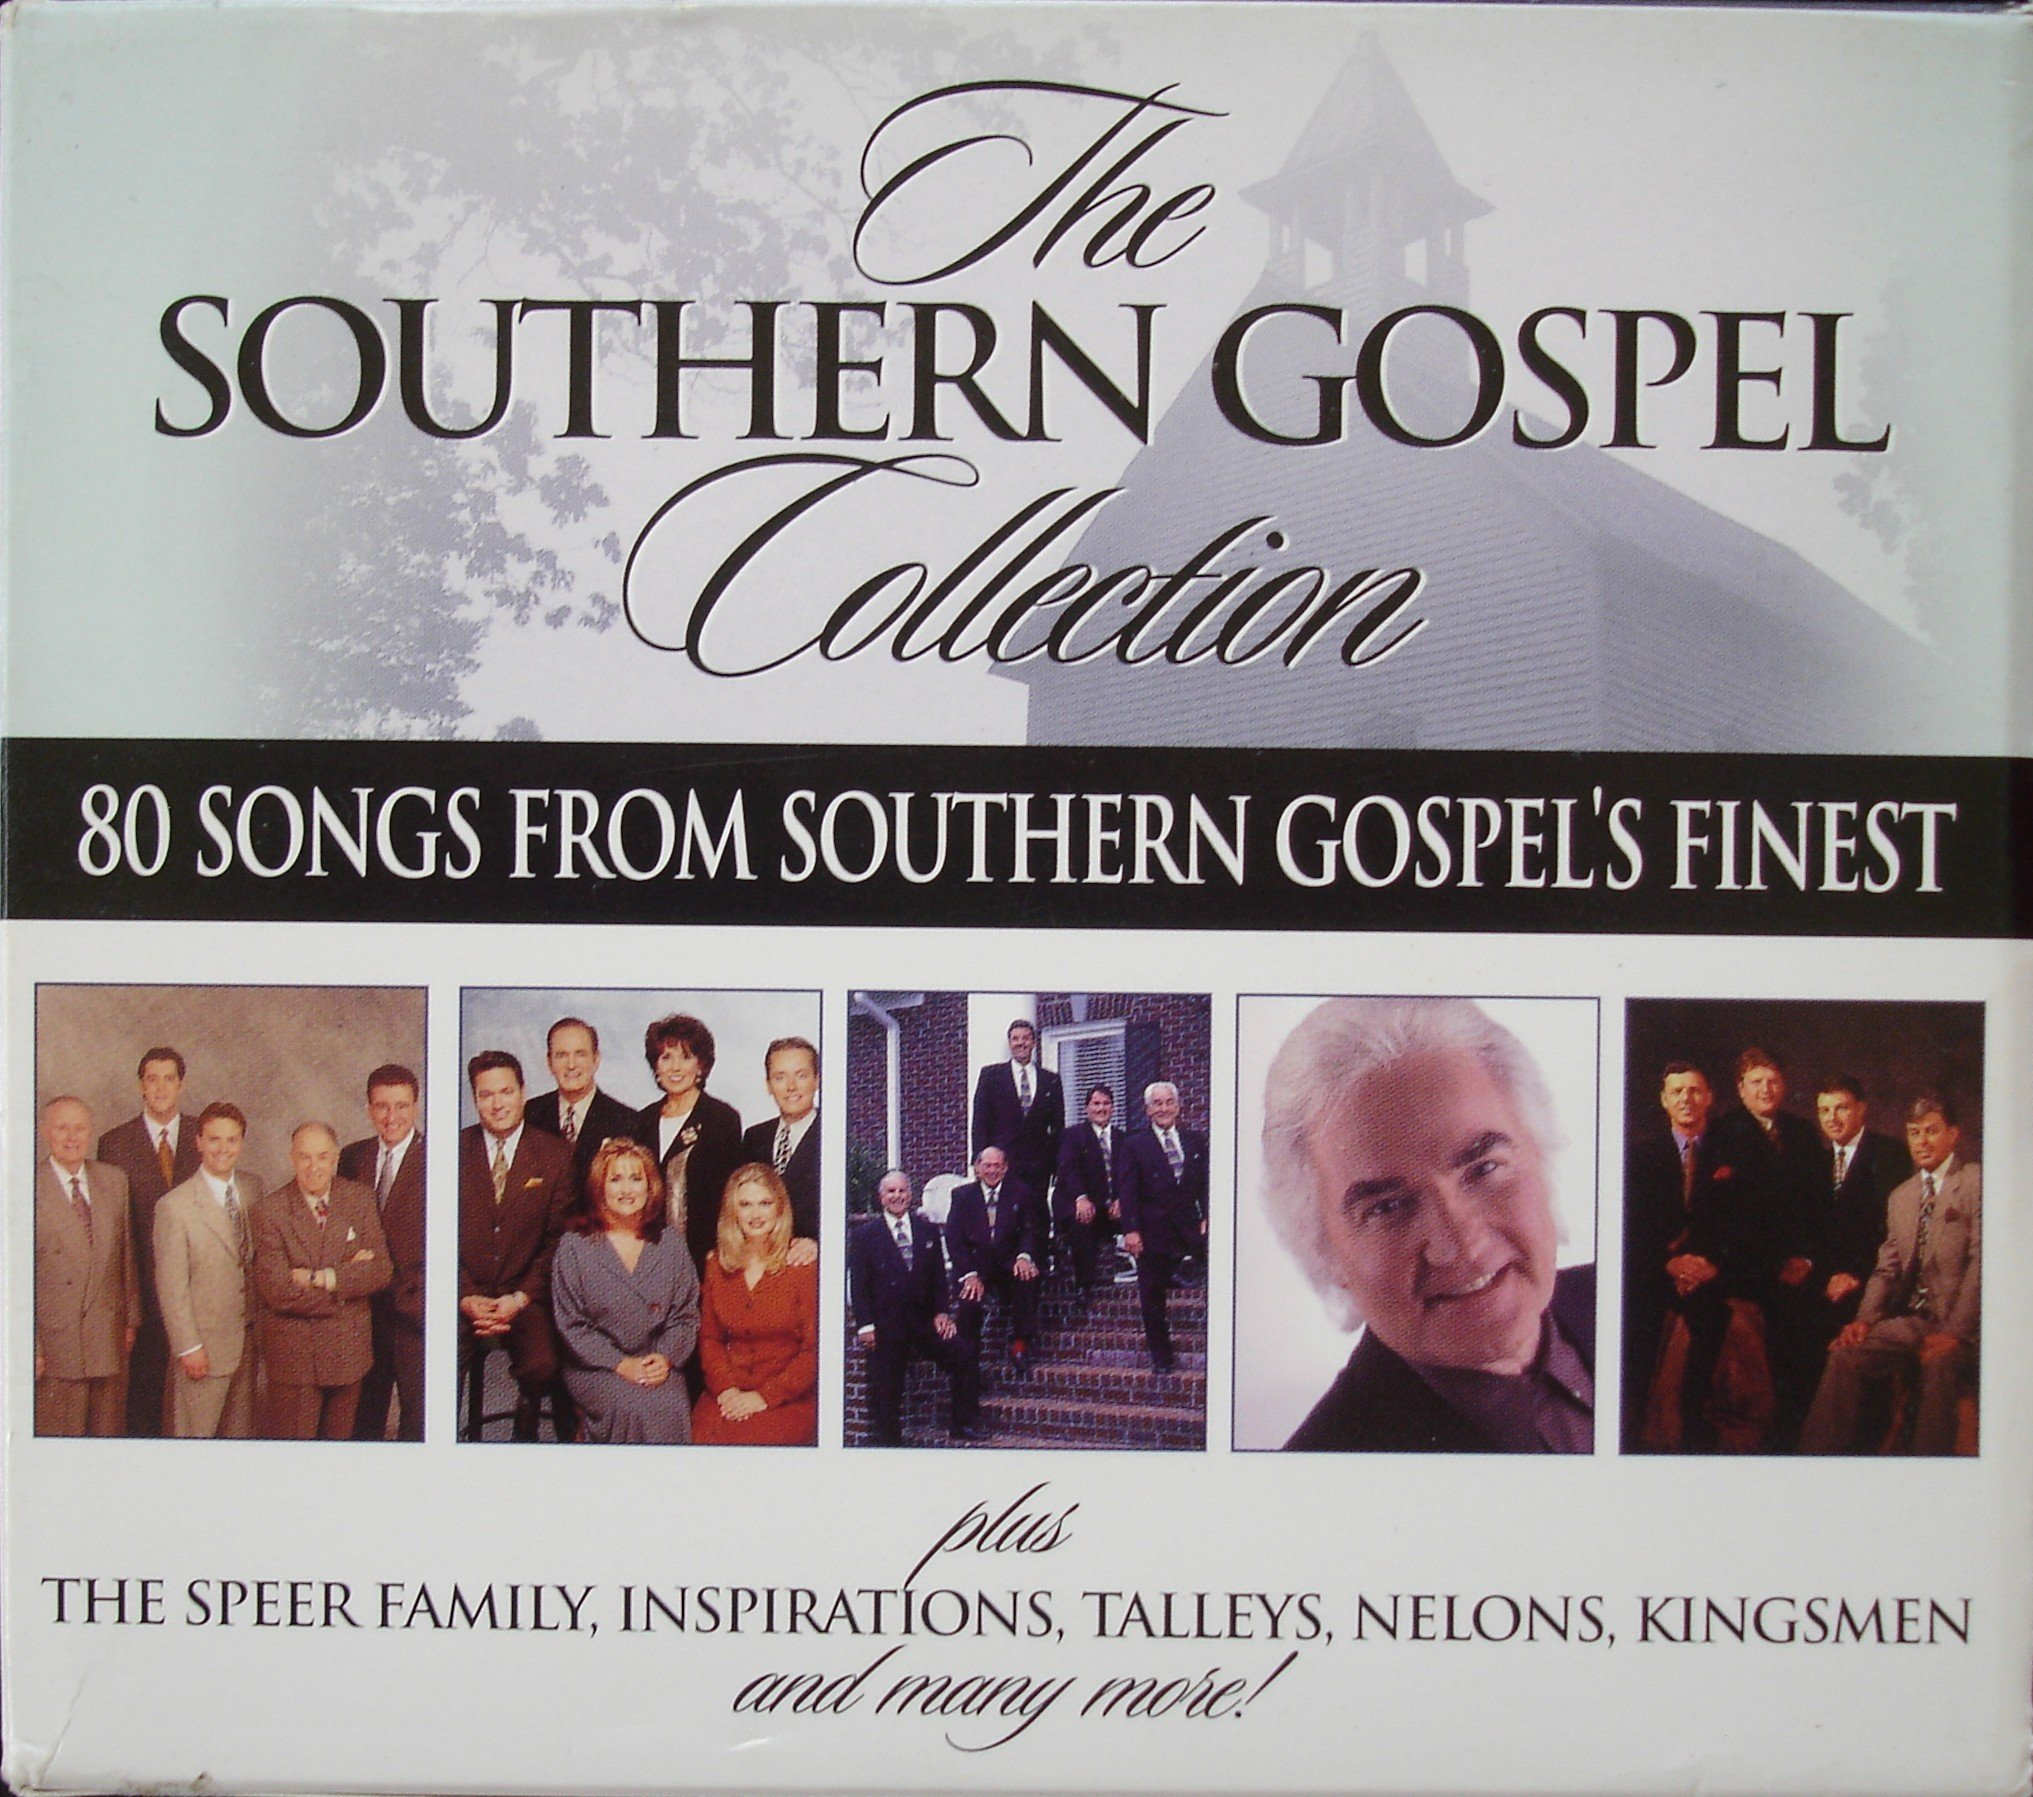 The Southern Gospel Collection: 80 Songs From Southern Gospel's Finest